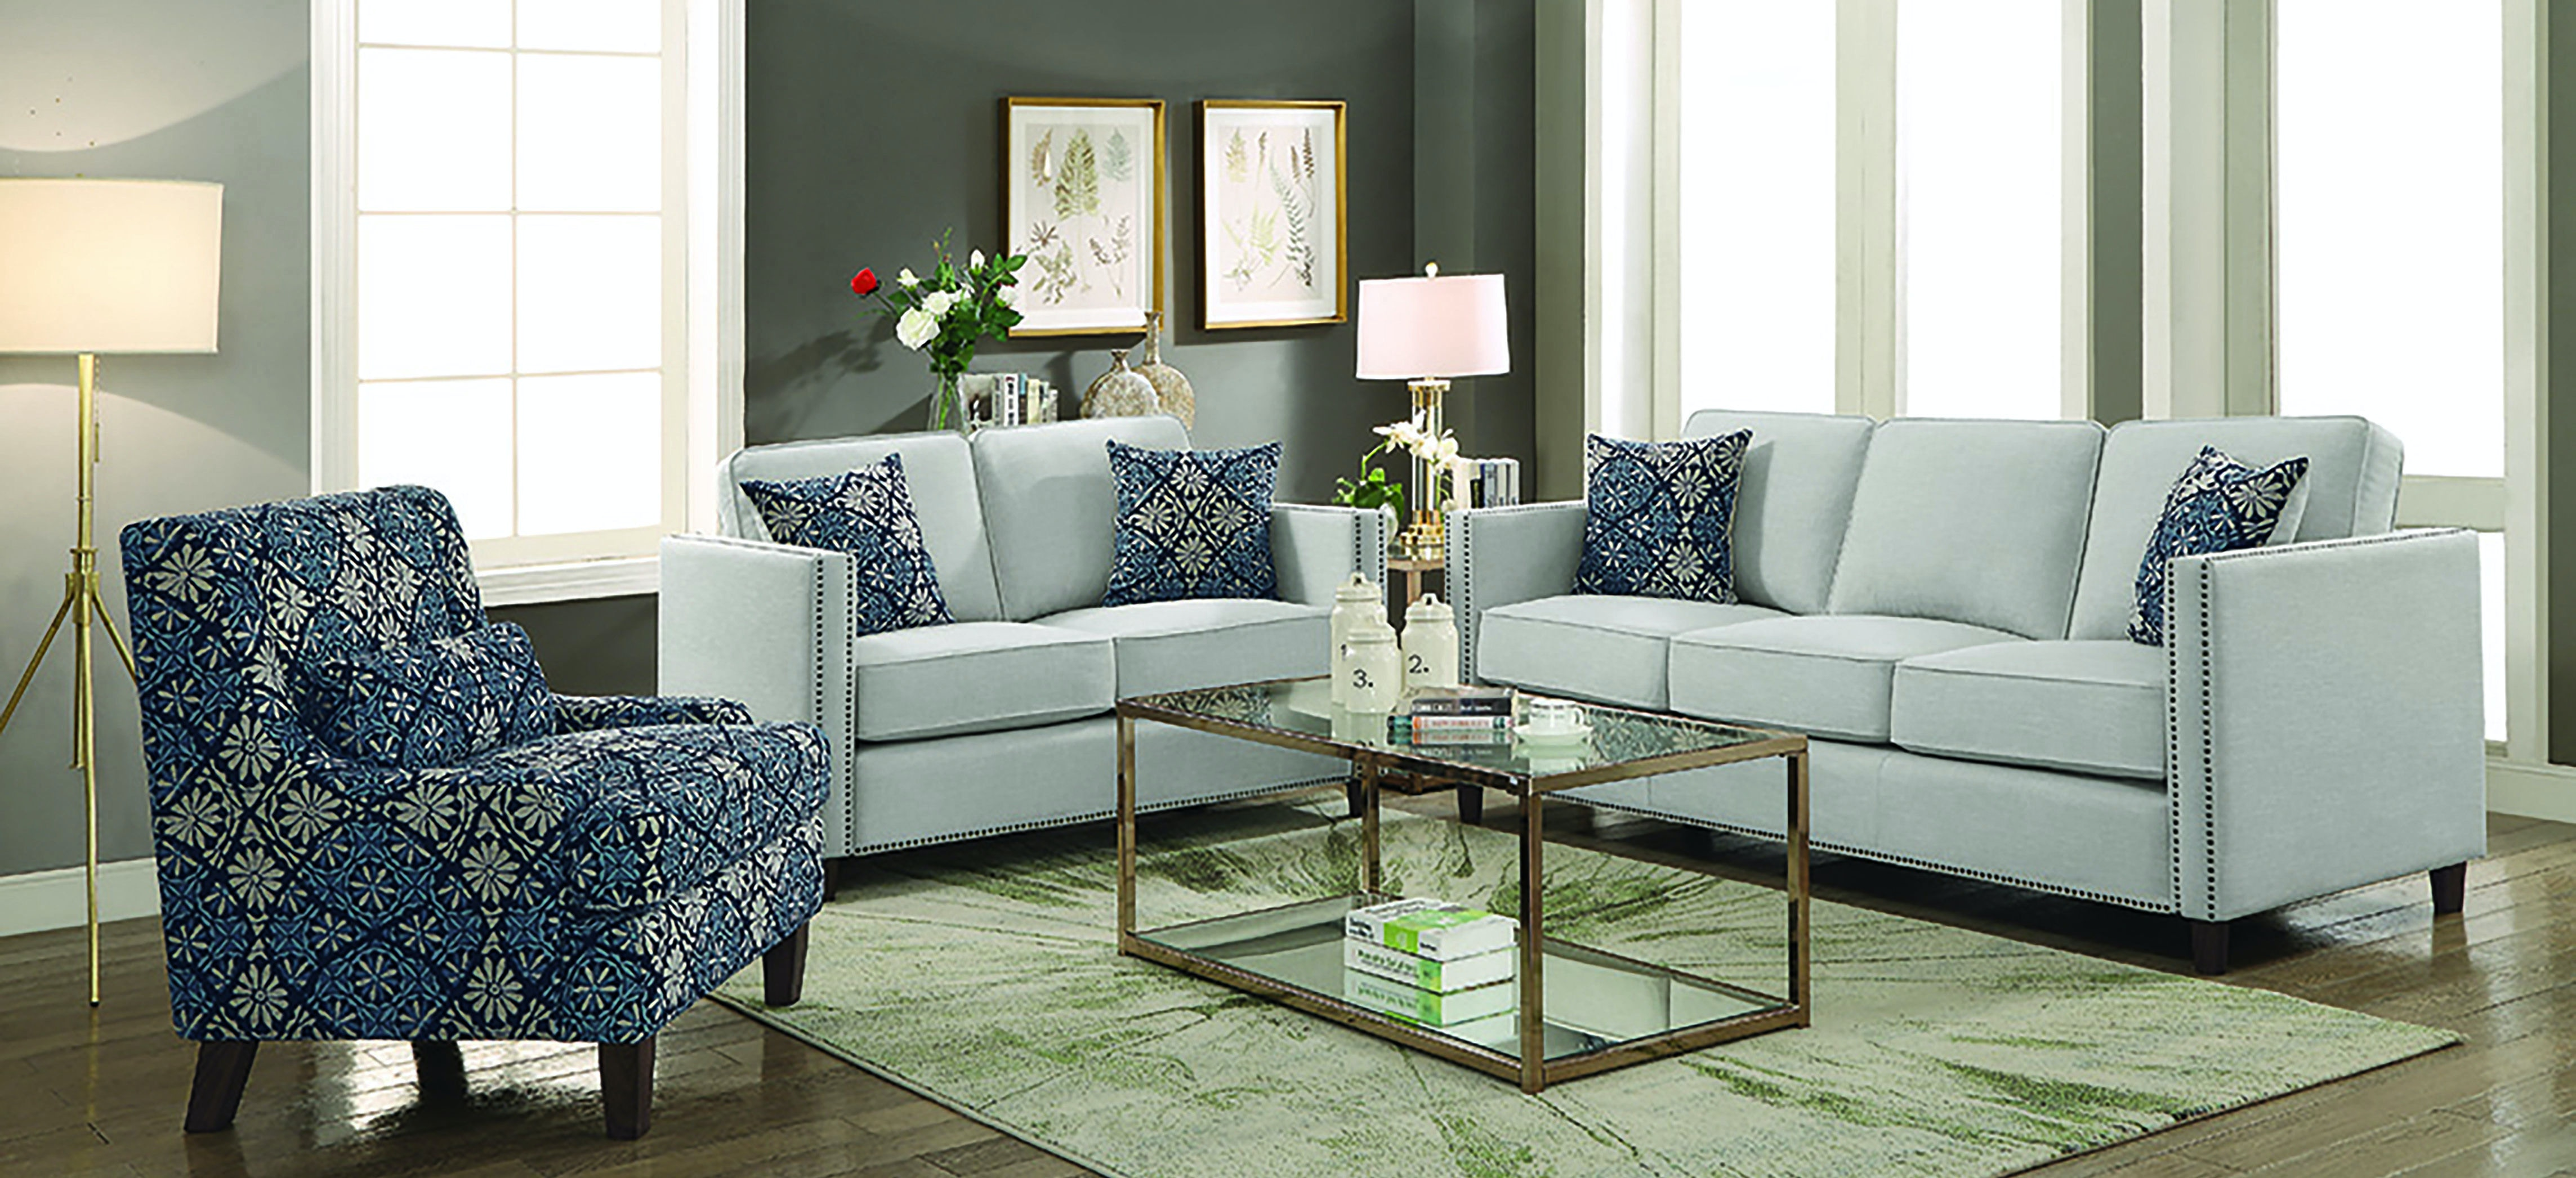 506251 S3. 3 Piece Living Room Set